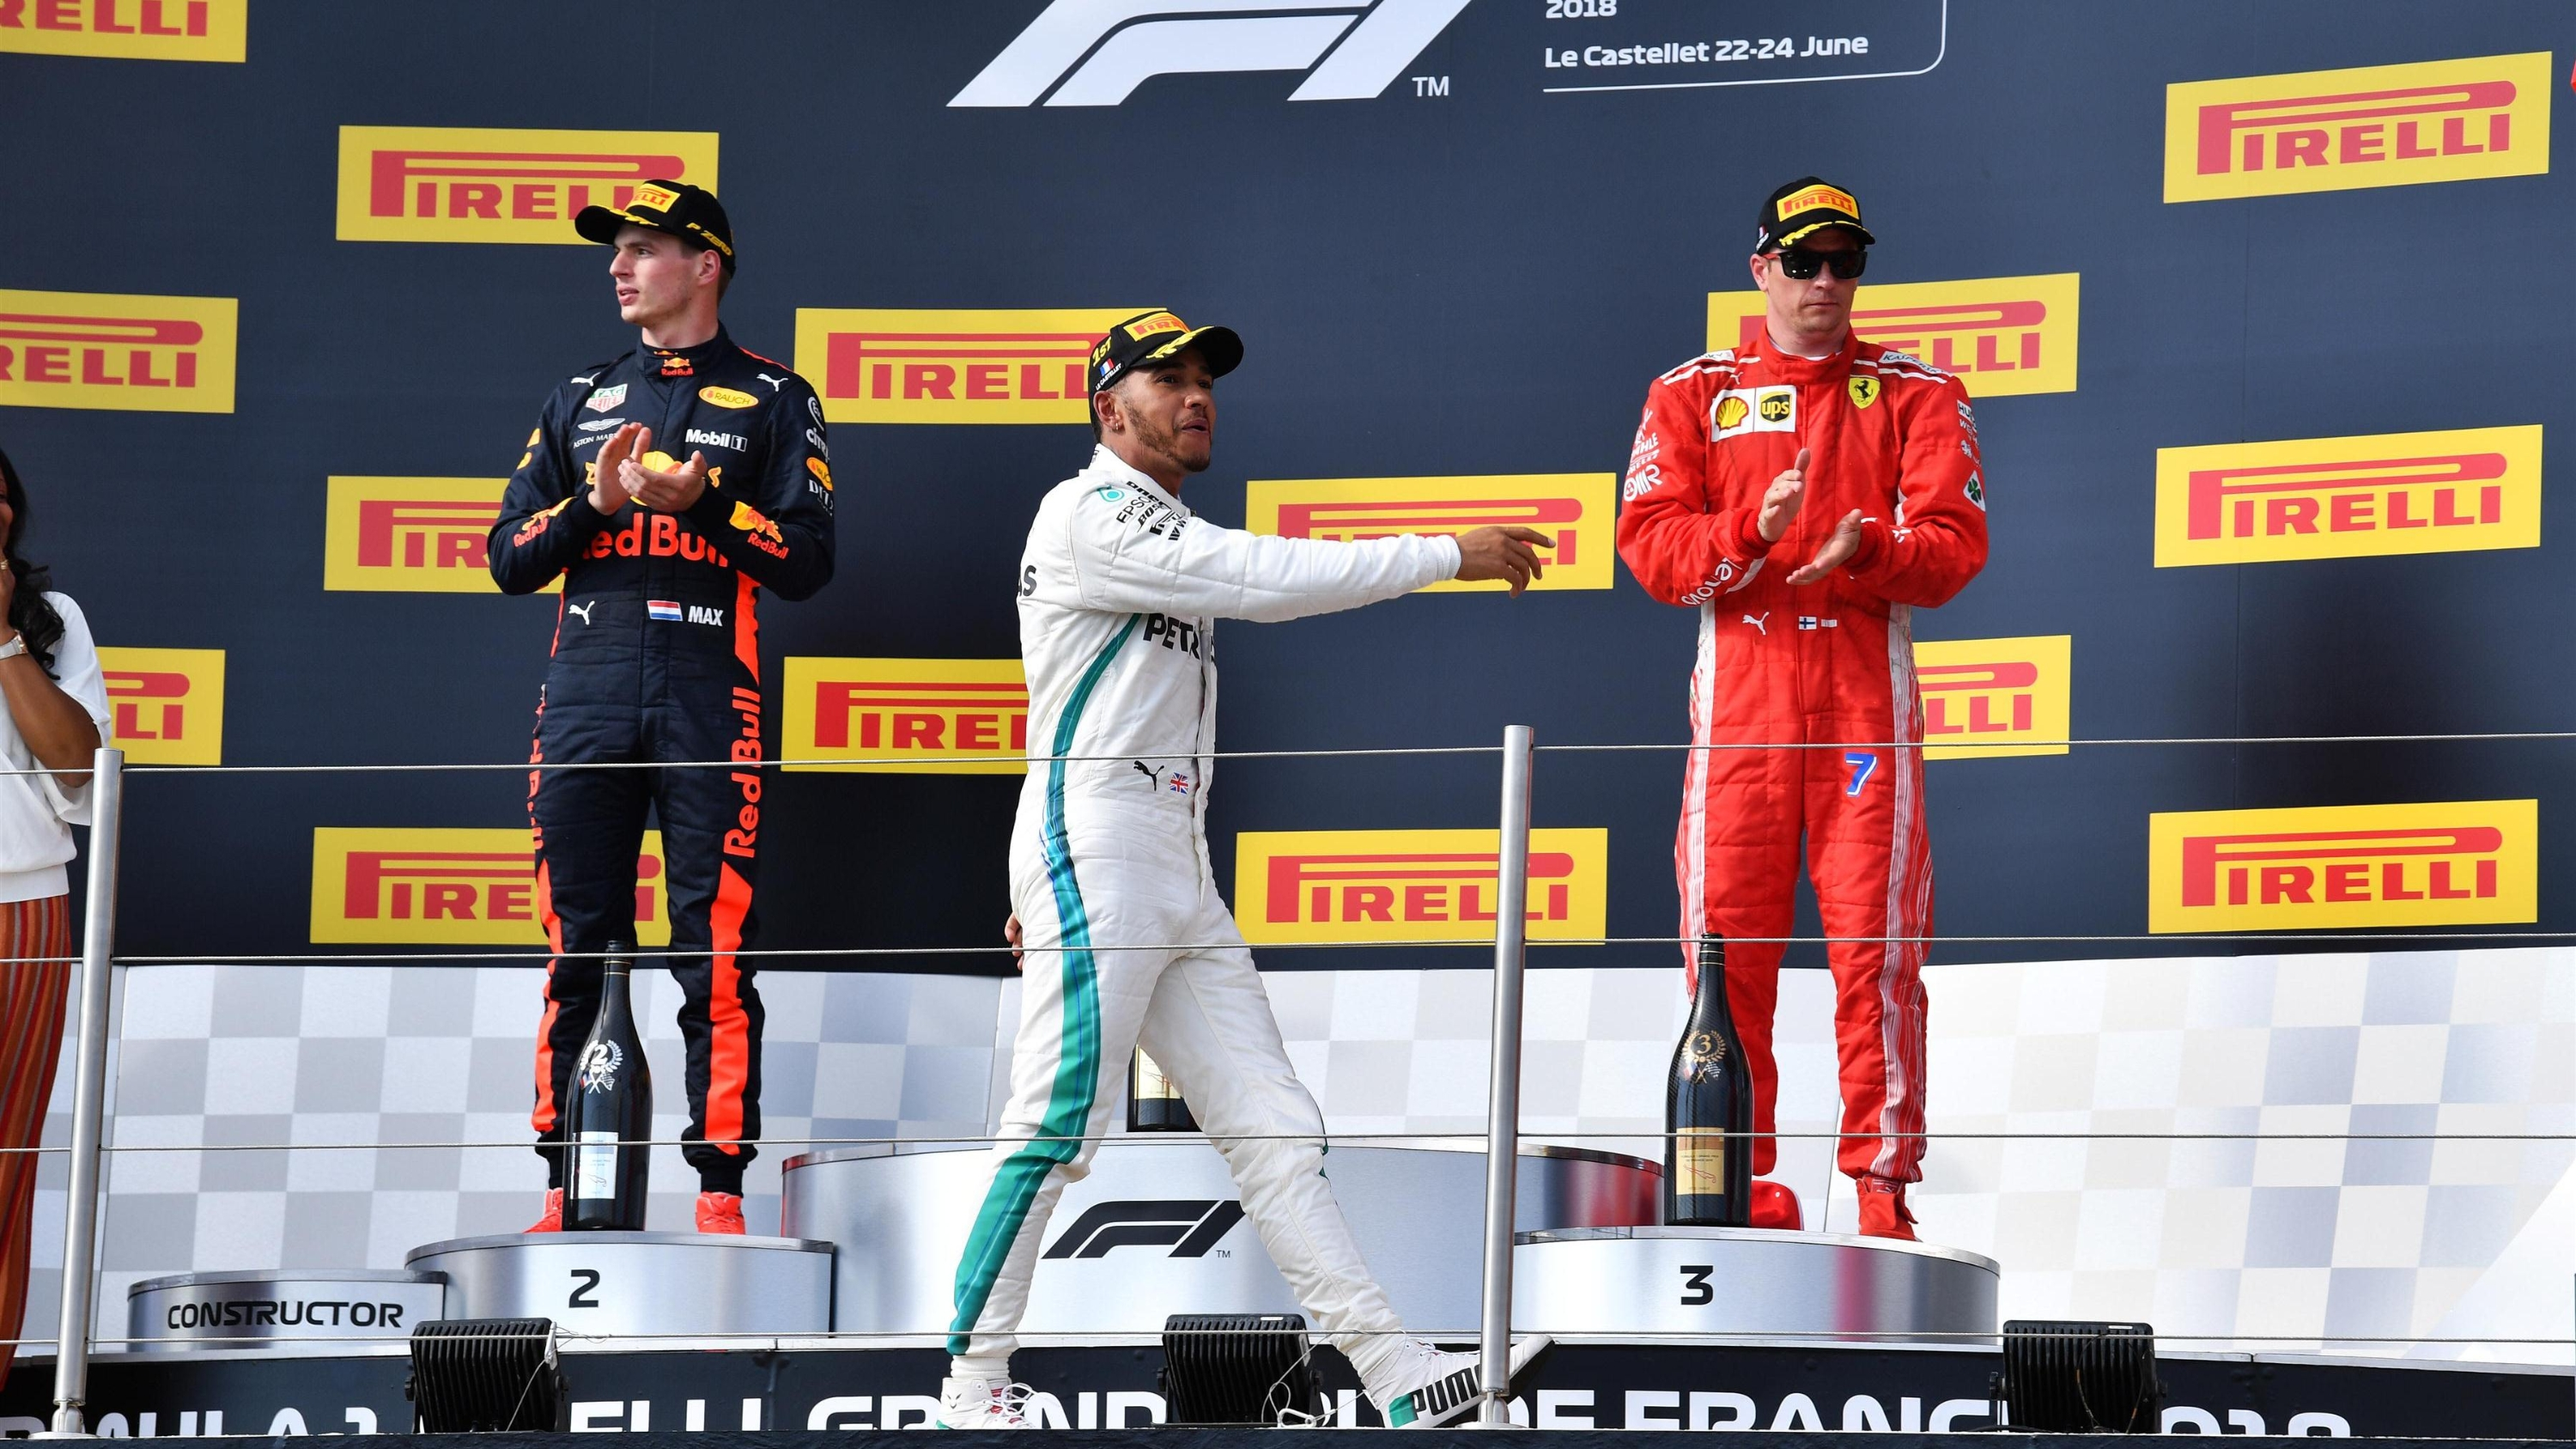 Vettel denies Hamilton in final Austrian GP practice